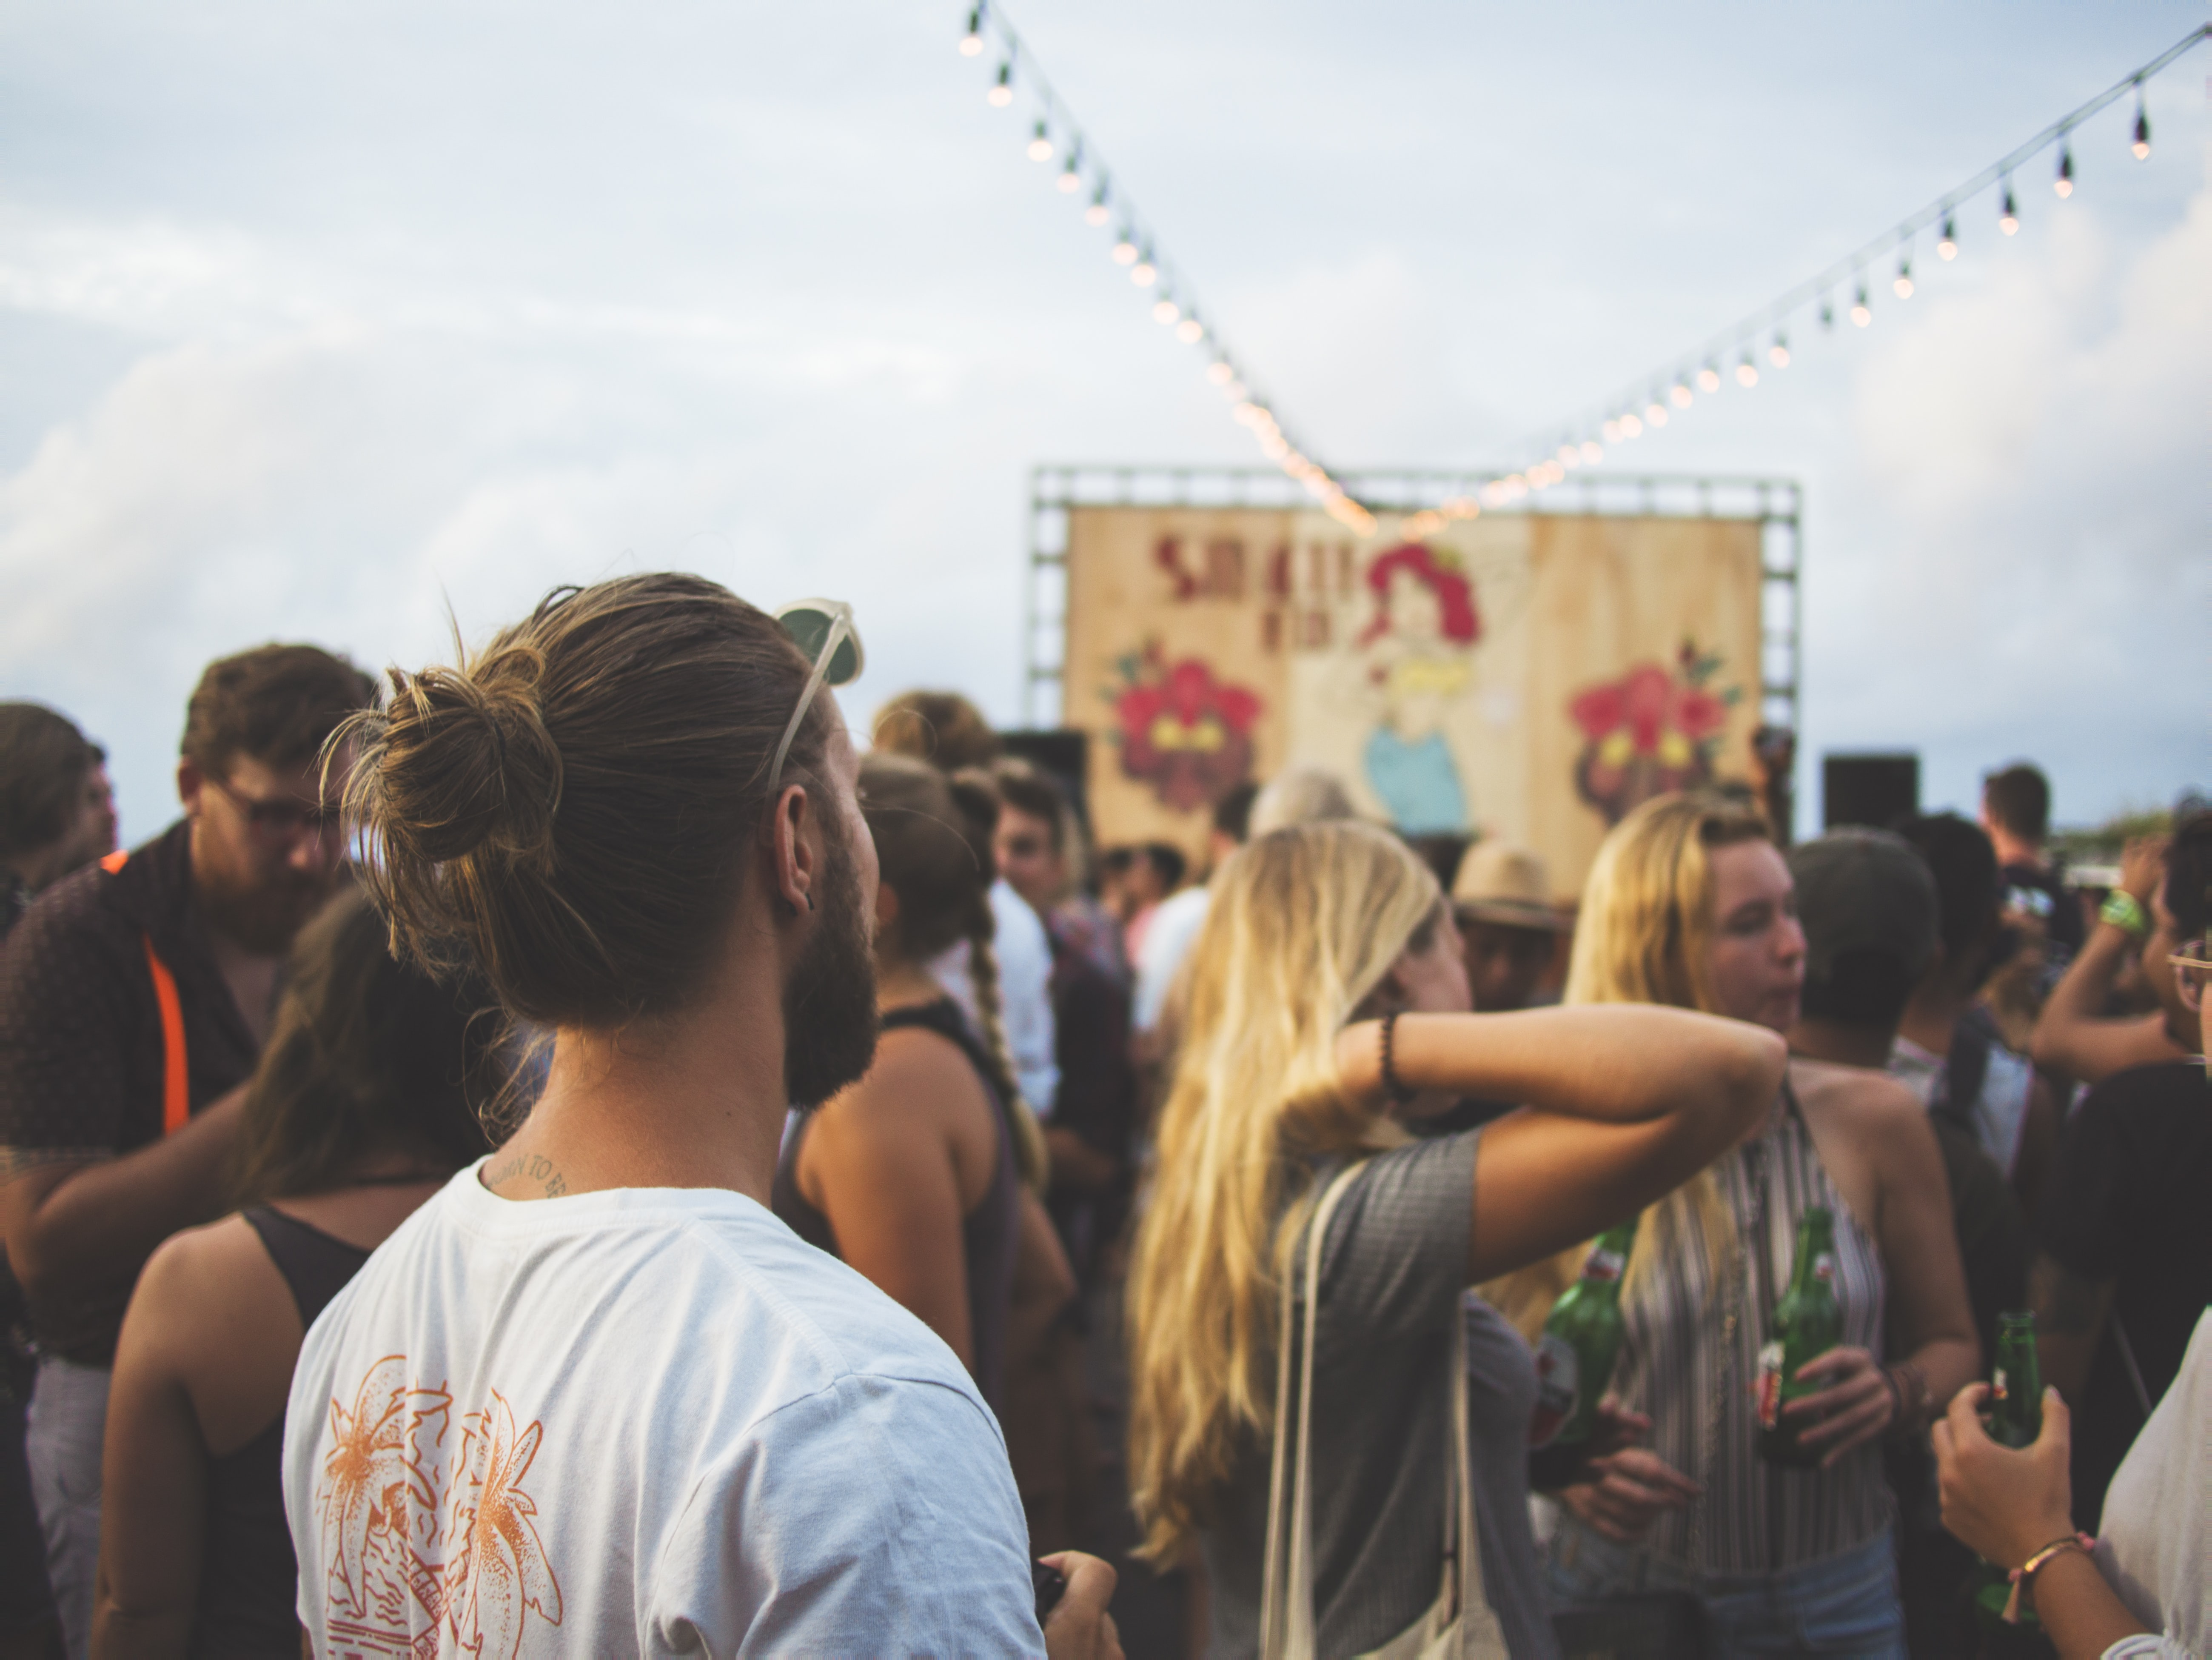 Utmost Guide to Visit Festivals by Yourself